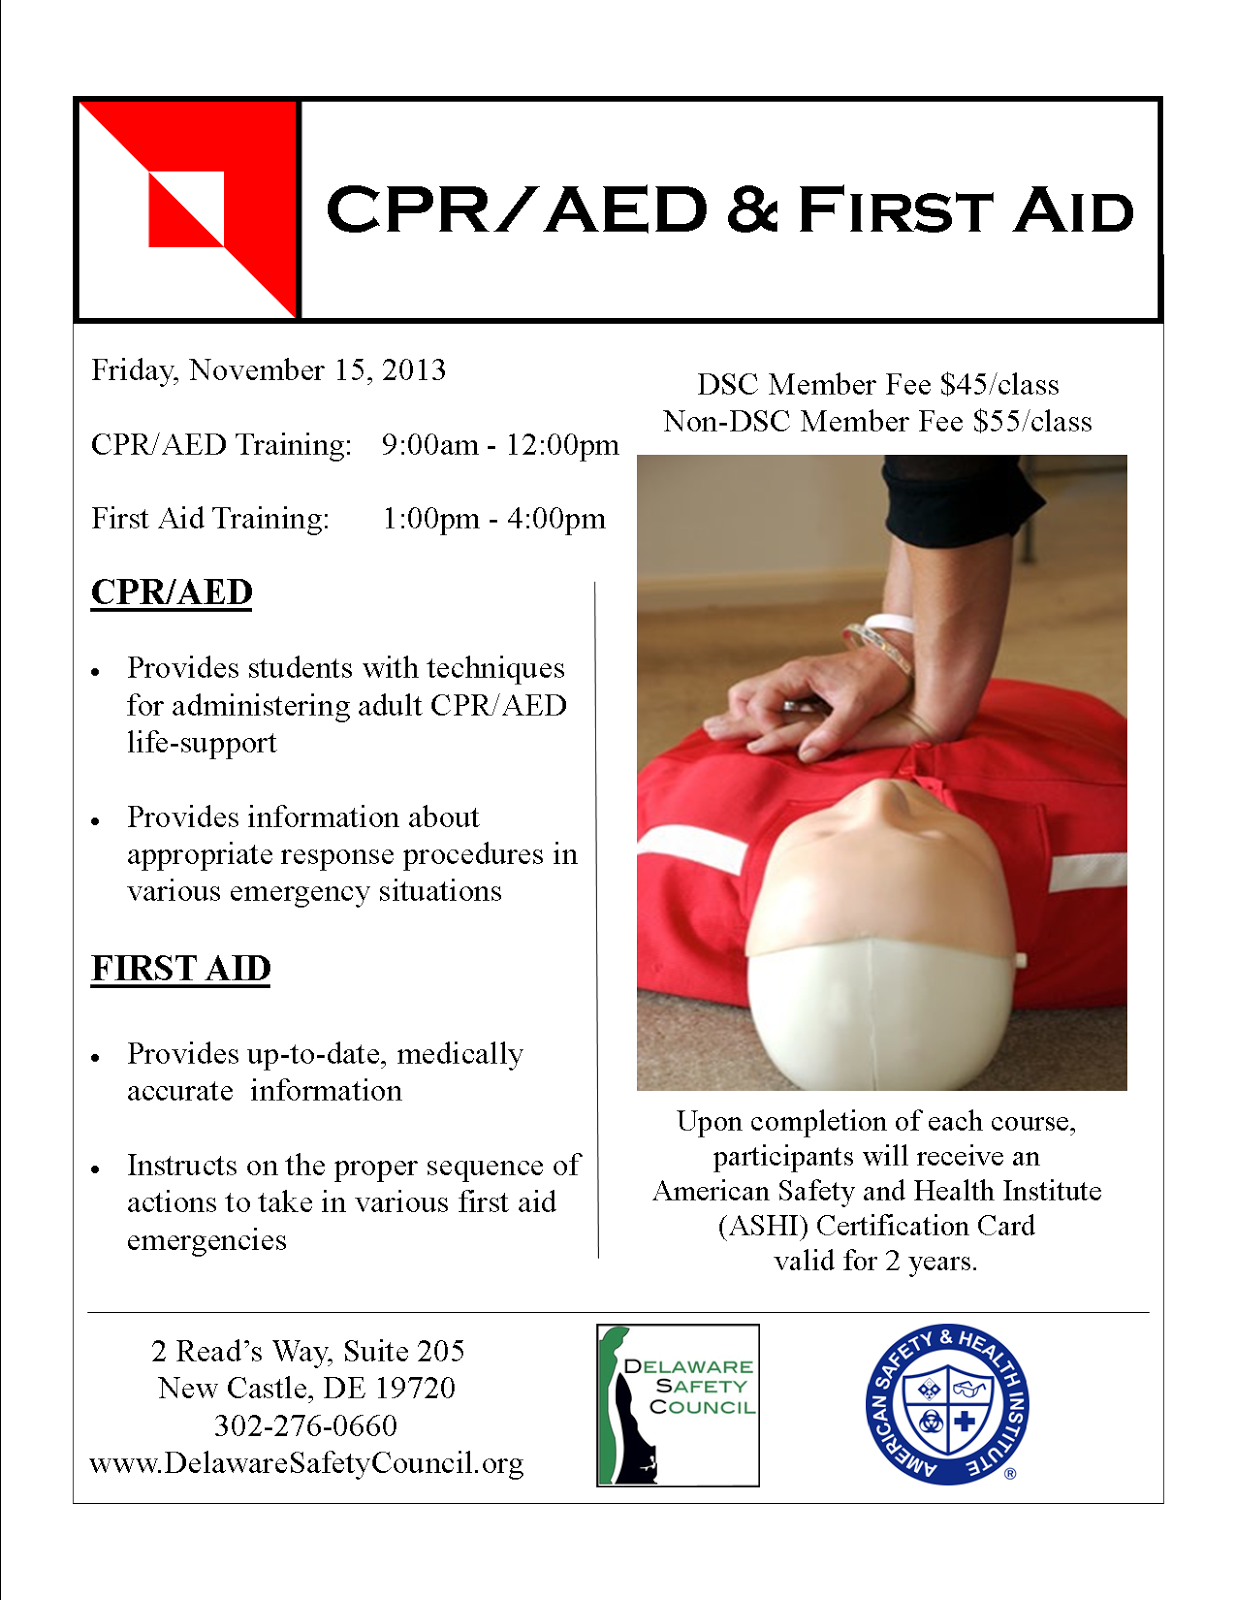 cpr aed first aid training delaware safety council. Black Bedroom Furniture Sets. Home Design Ideas